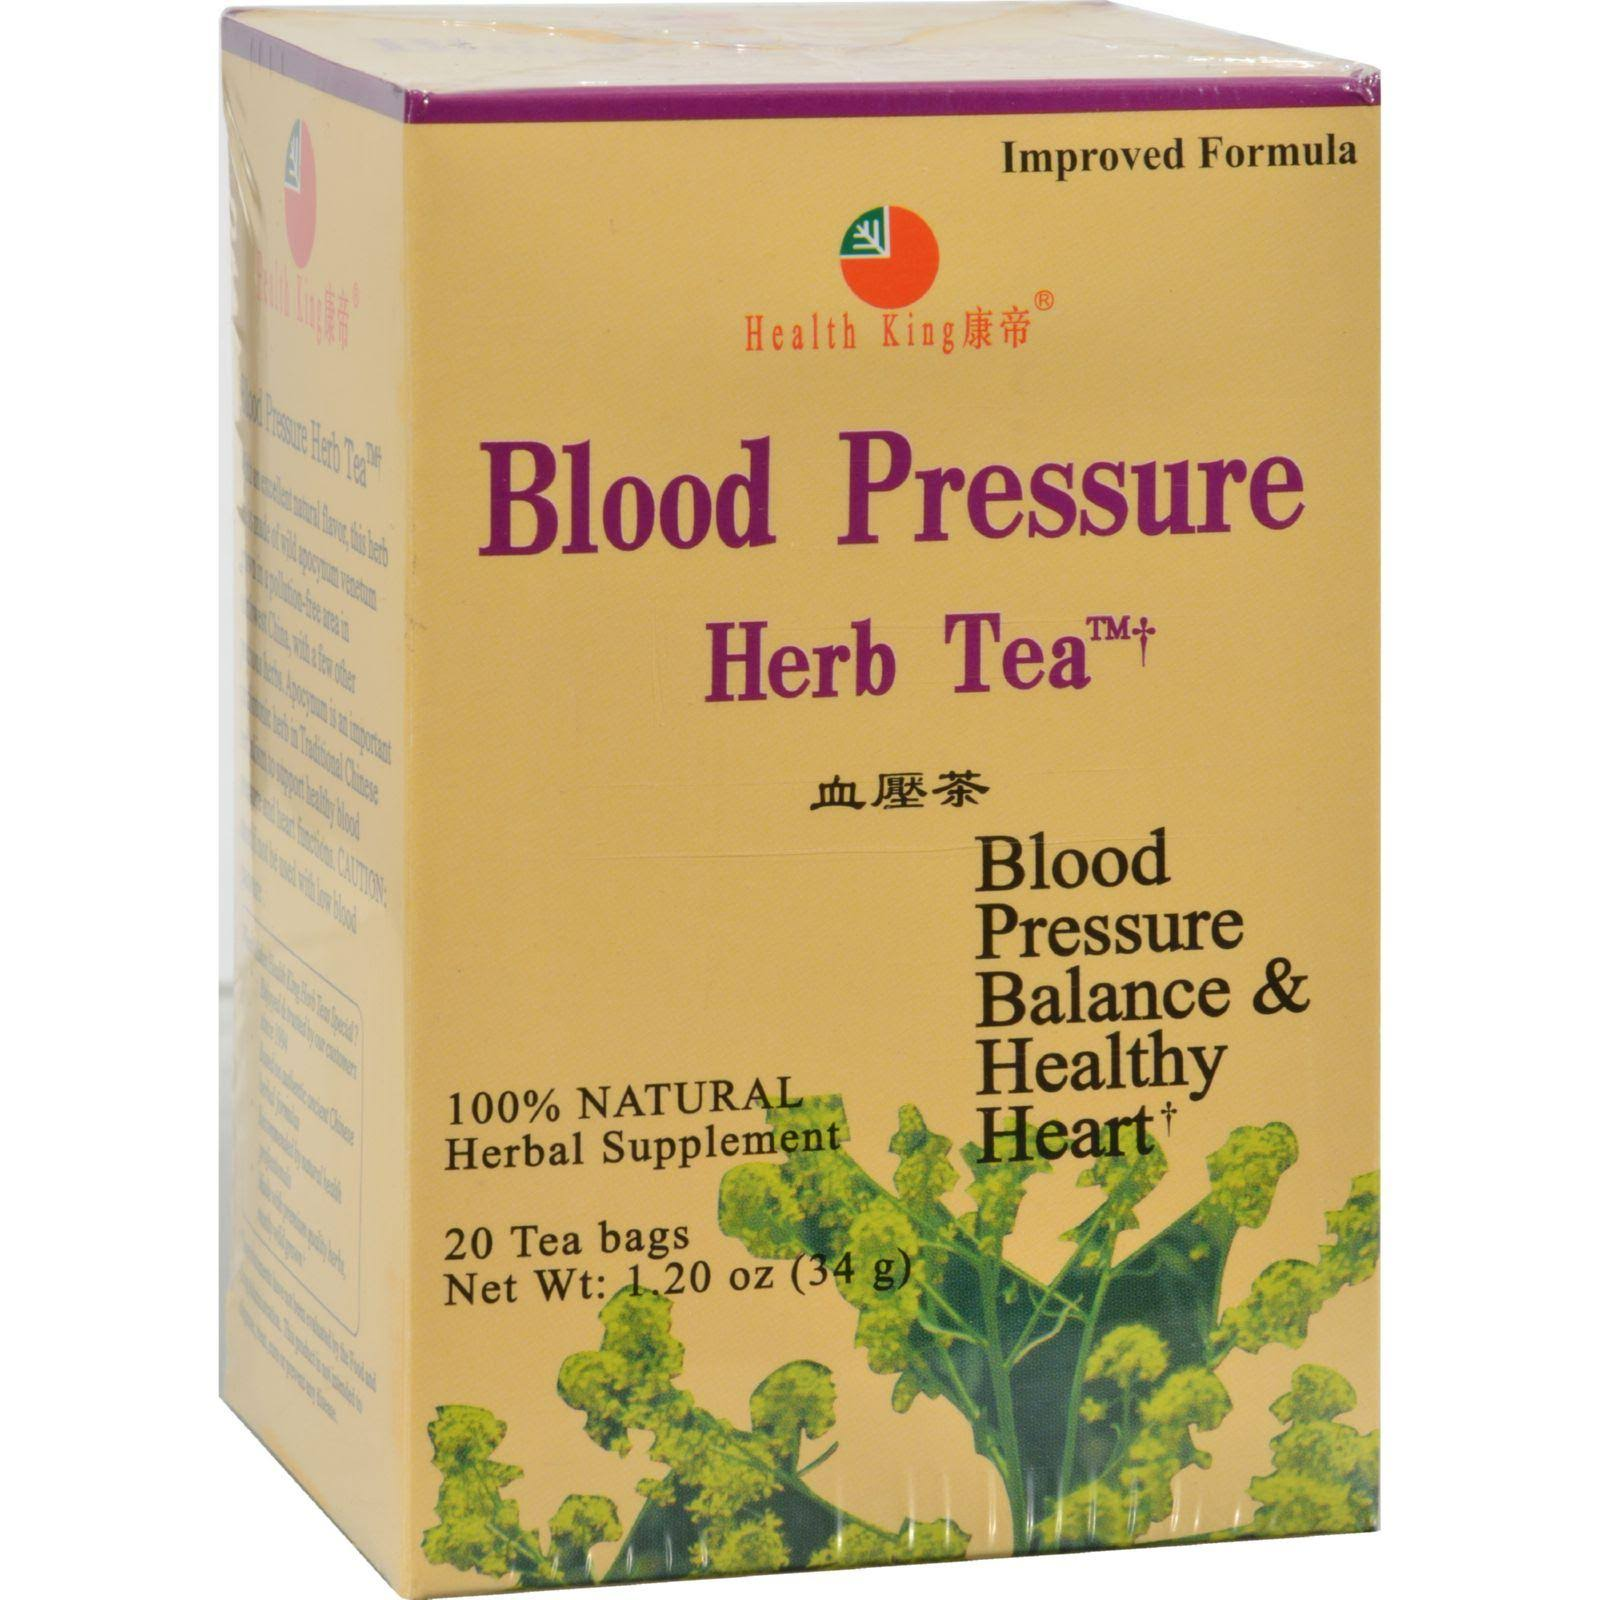 Health King Blood Pressure Herb Tea - 20 Teabags